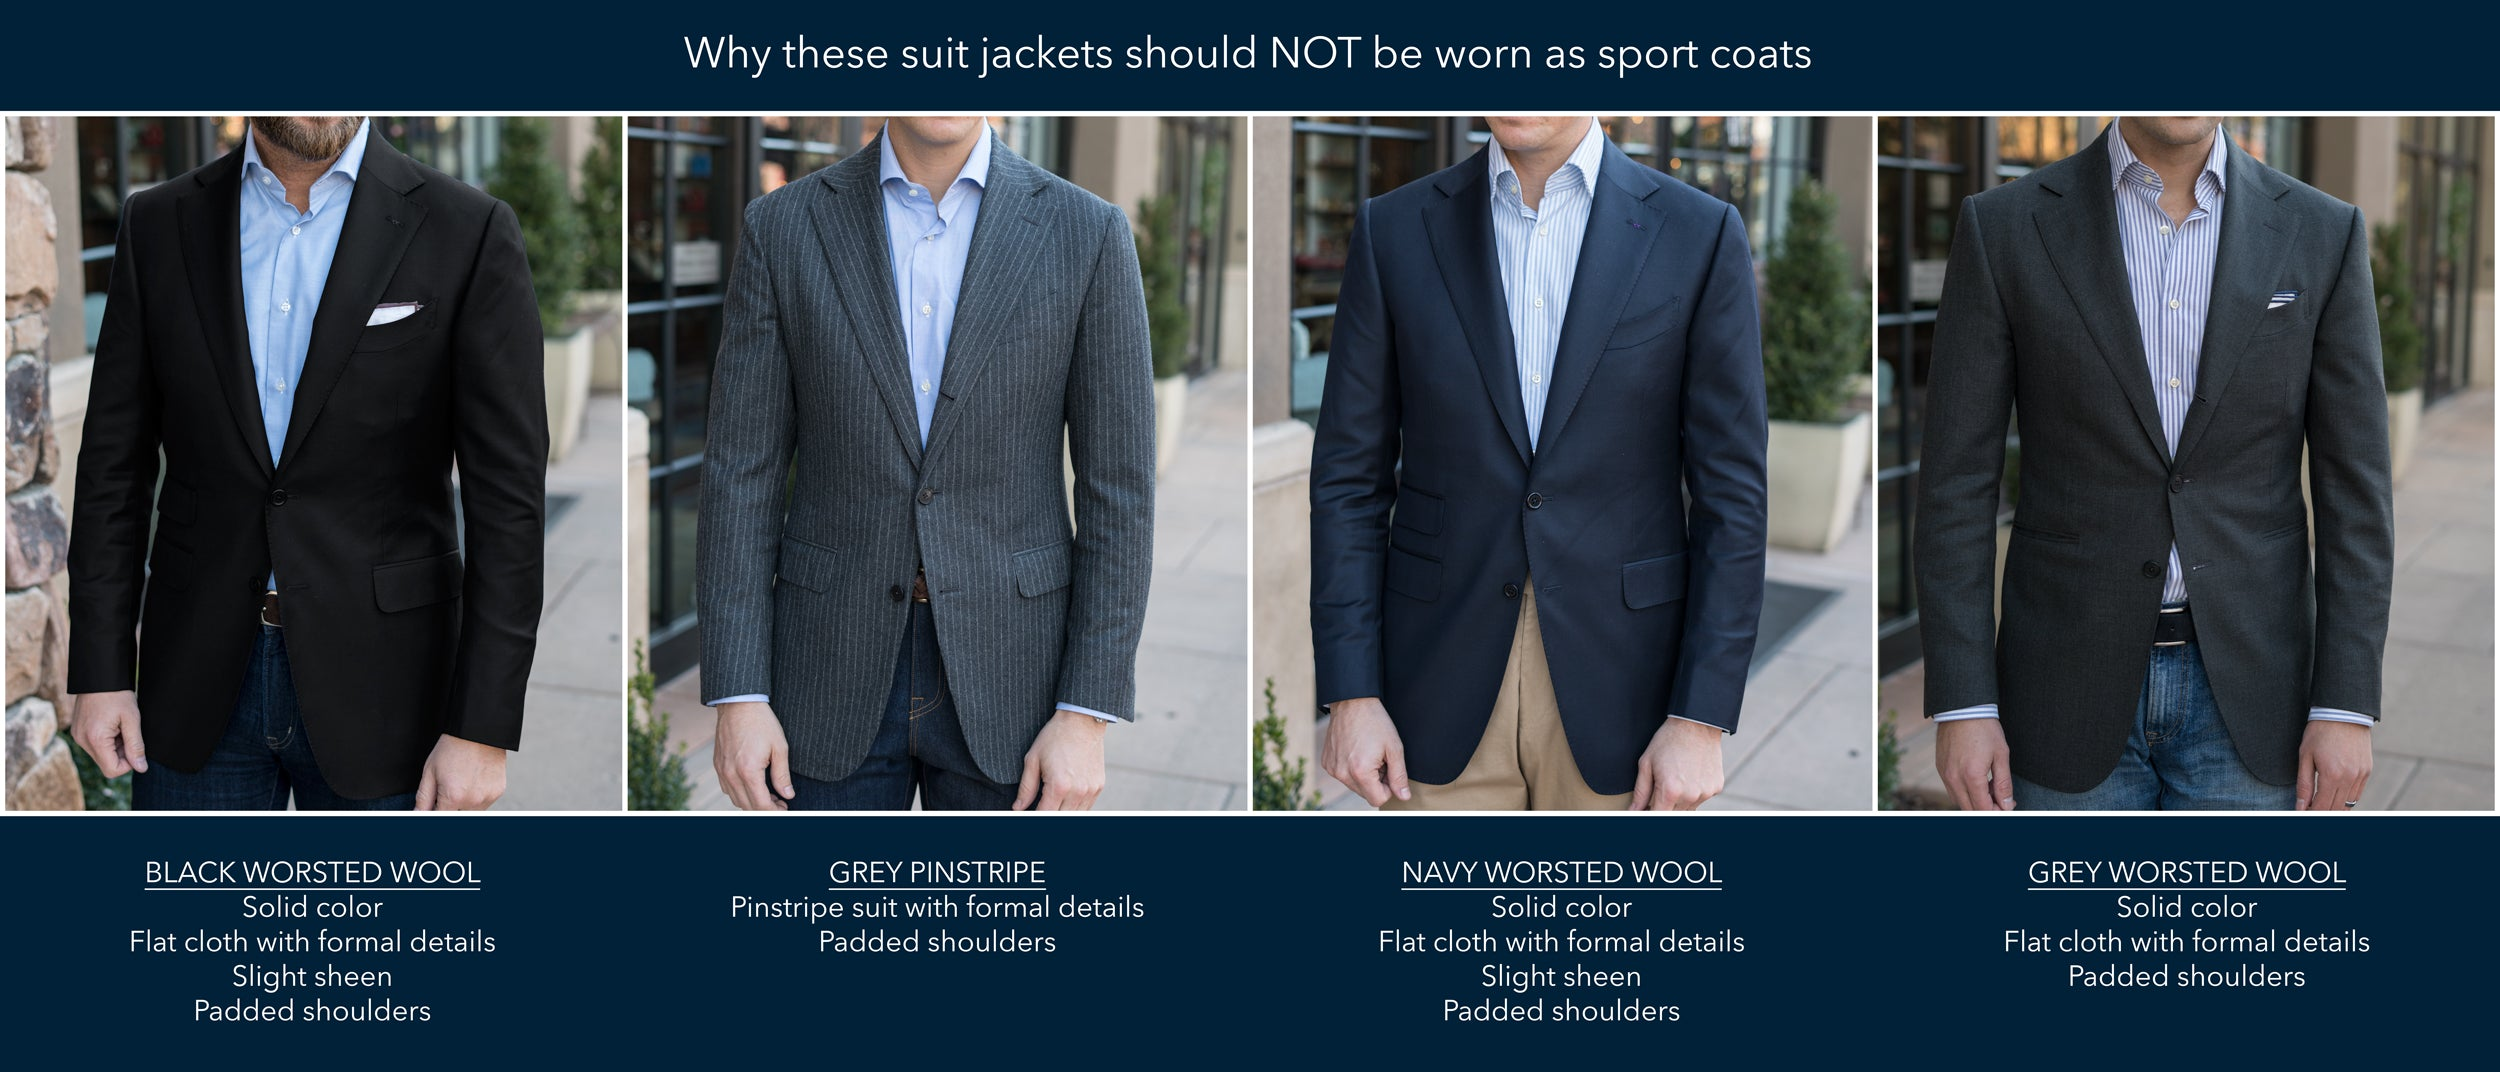 How NOT to wear a suit jacket as a sport coat